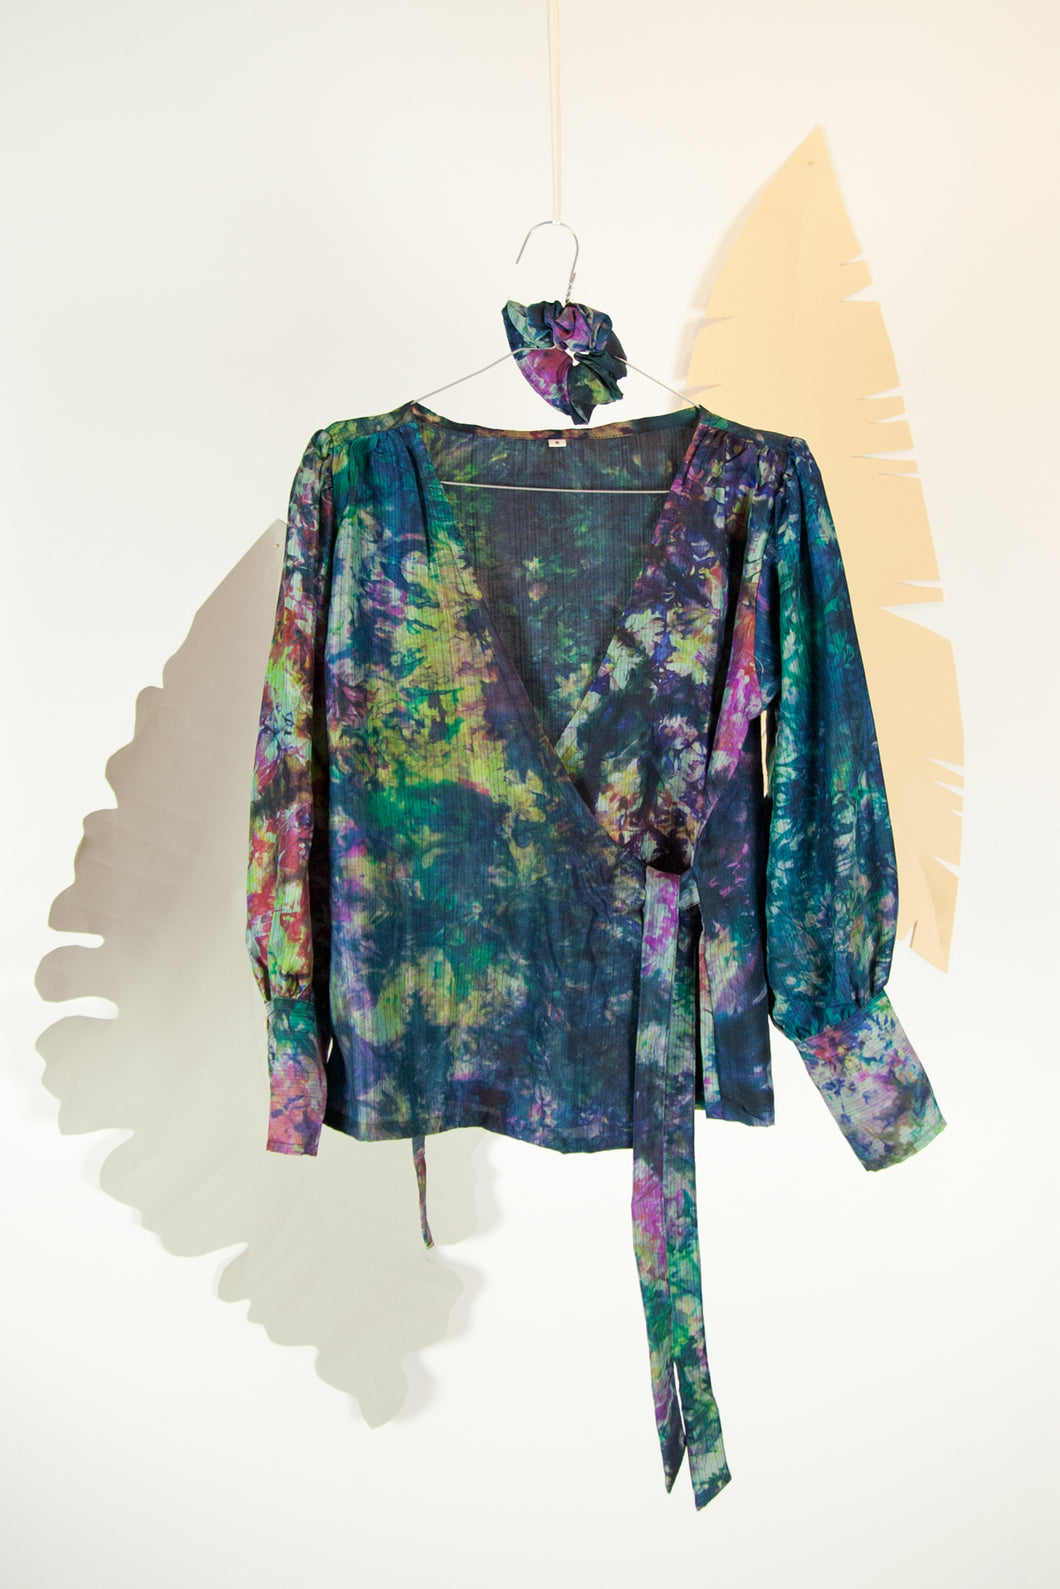 A Splash of Batik Blouse - S #21